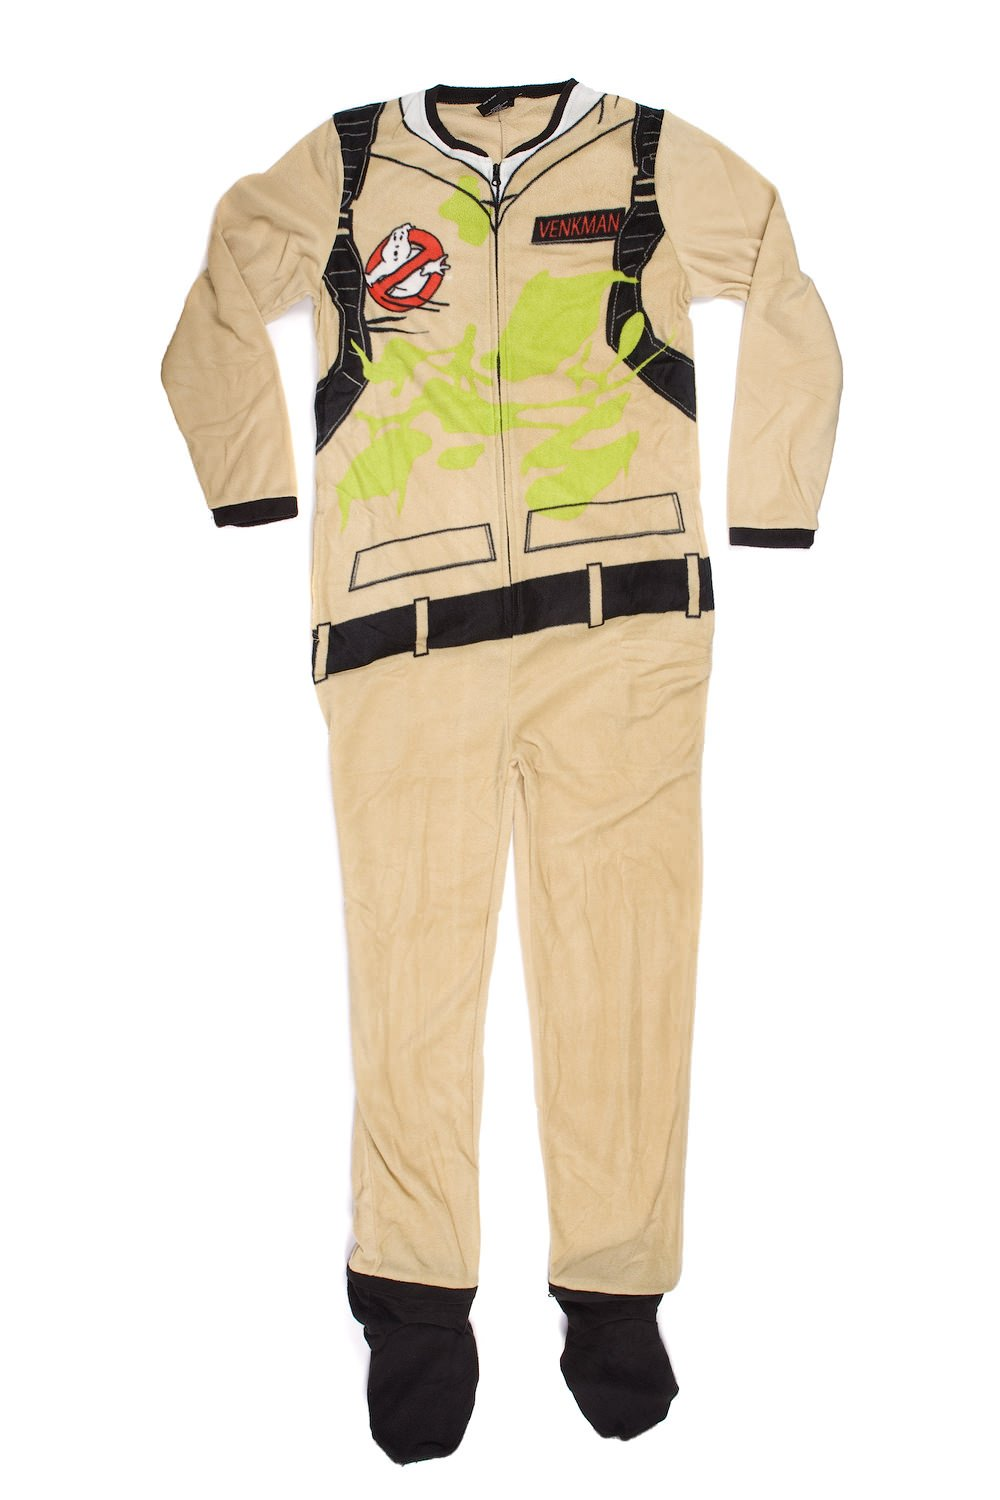 Ghostbusters Suit Up Men's Costume Union Suit Oneise pajamas